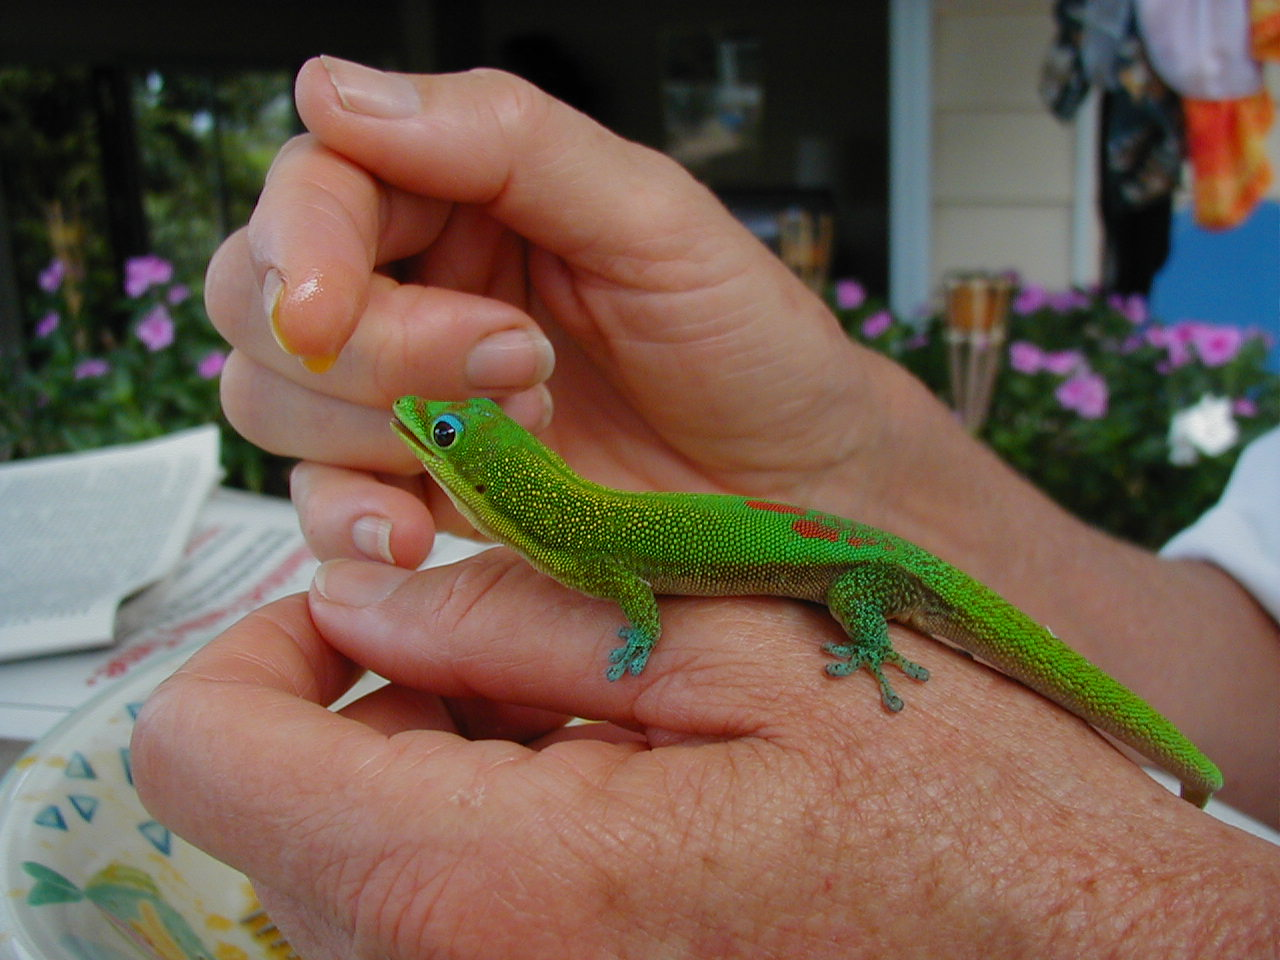 Snow Crash: More Than You Ever Wanted To Know About Geckos